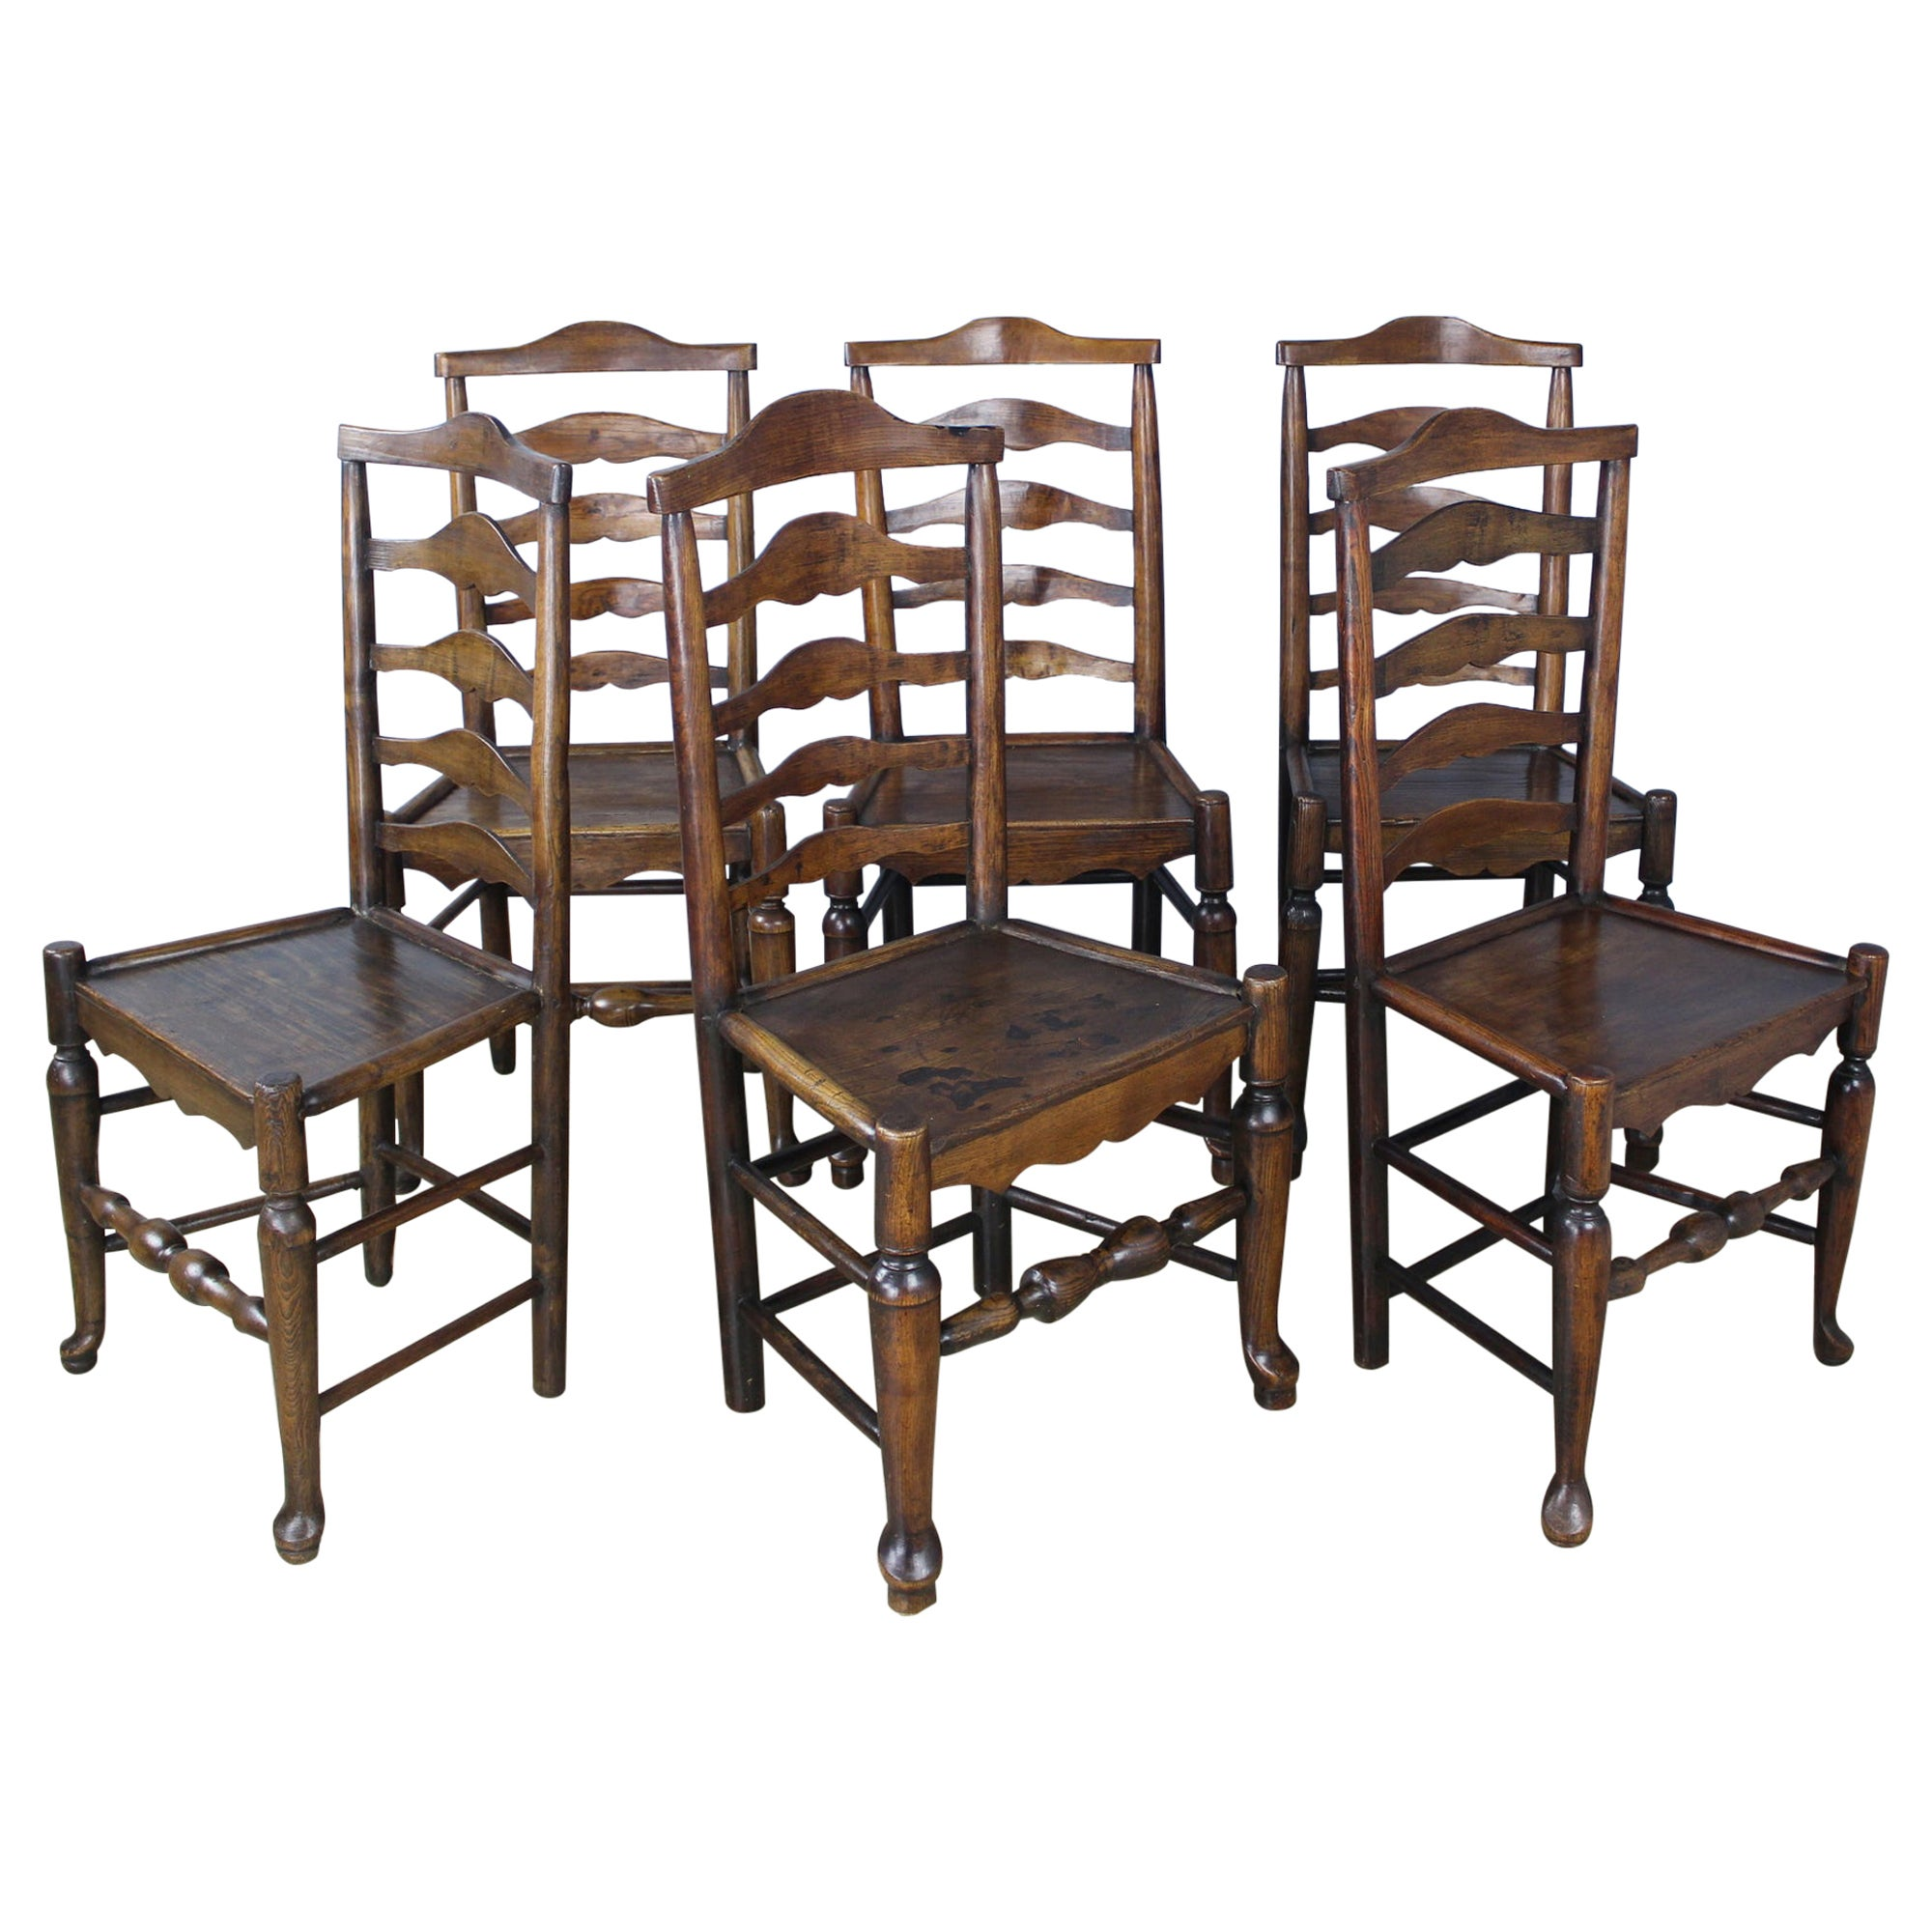 Set of 6 18th Century Oak and Ash Ladderback Dining Chairs